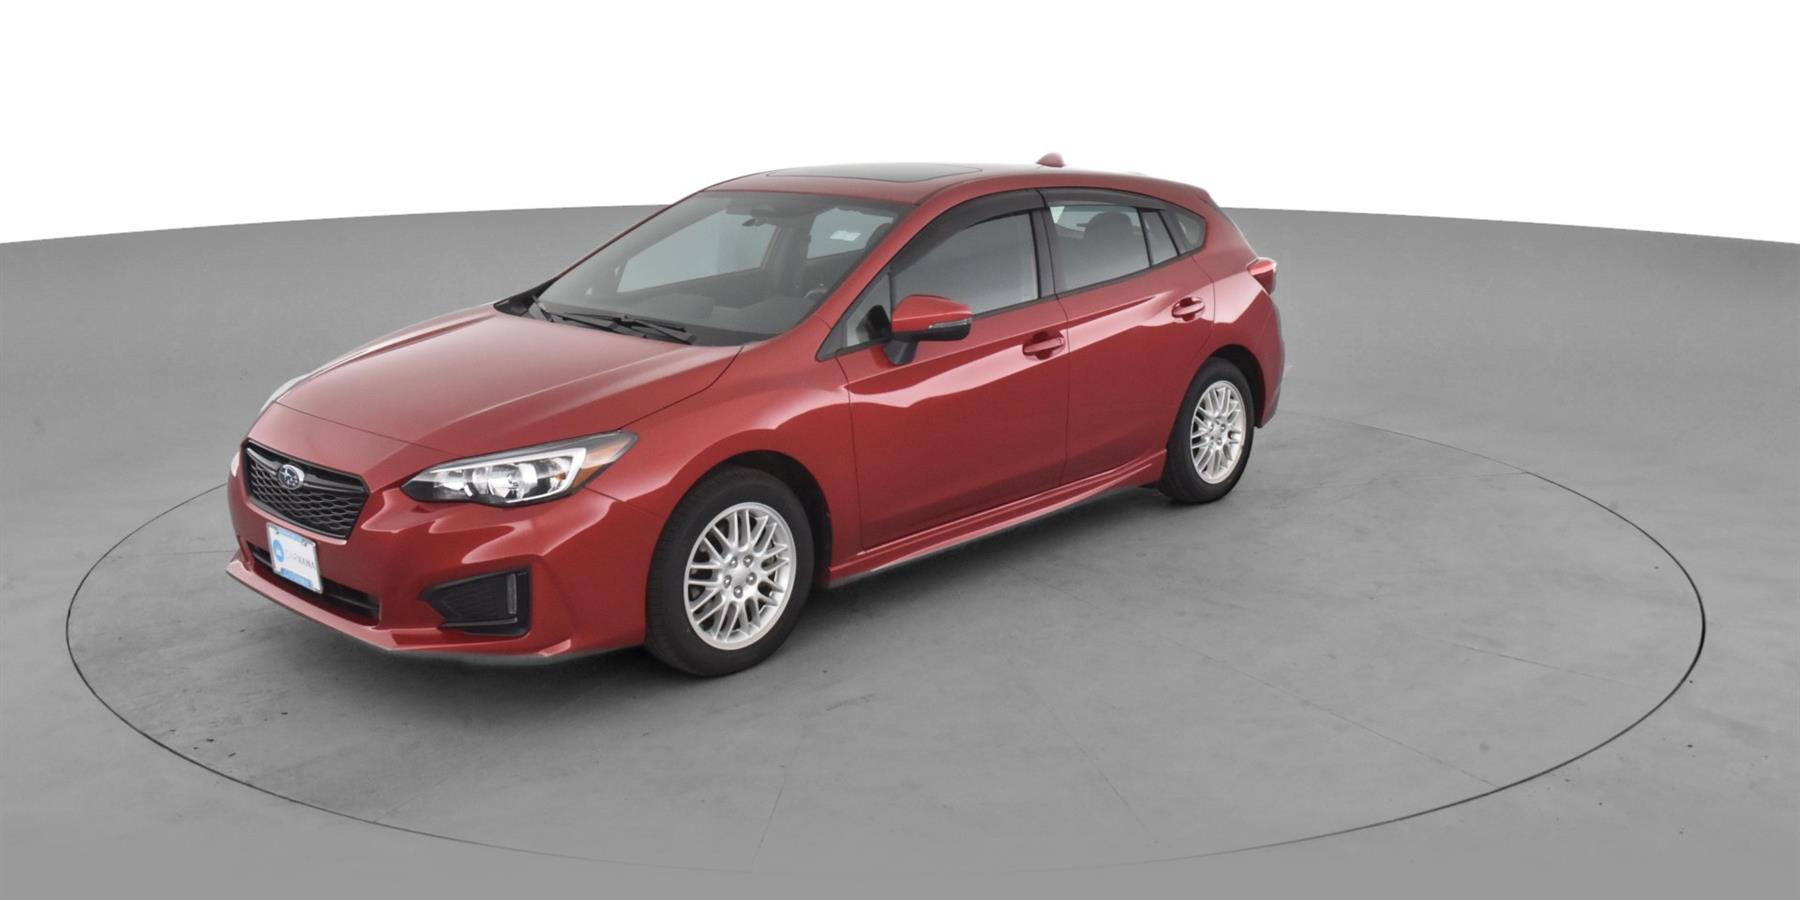 2018 Subaru Impreza 2 0i Sport Wagon 4D for Sale | Carvana®